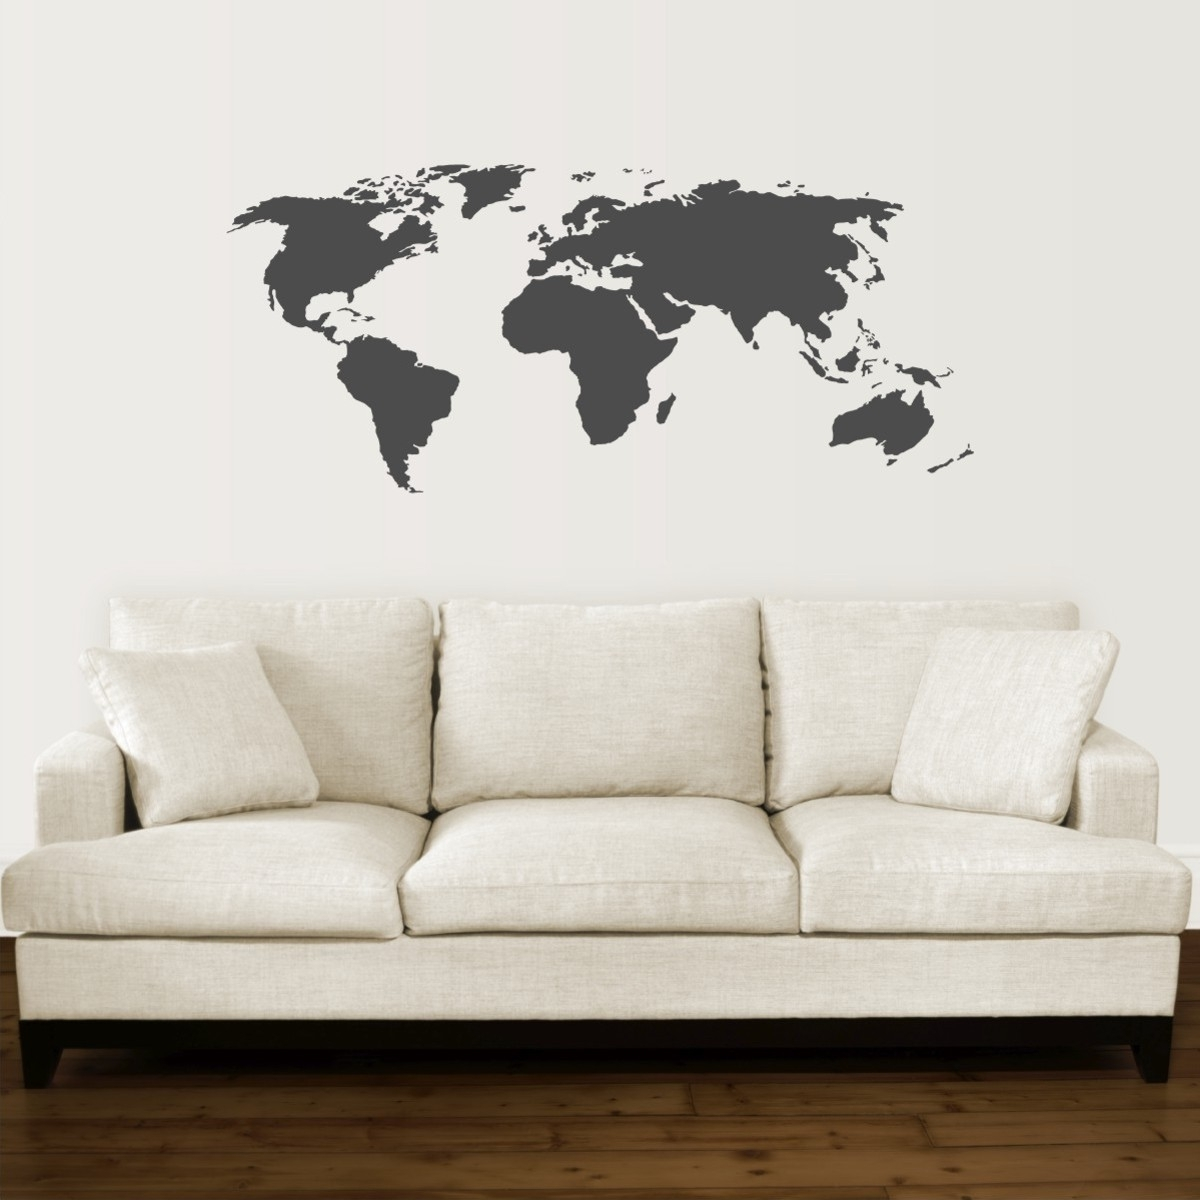 17 Cool Ideas For World Map Wall Art – Live Diy Ideas In 2017 Map Of The World Wall Art (View 5 of 20)